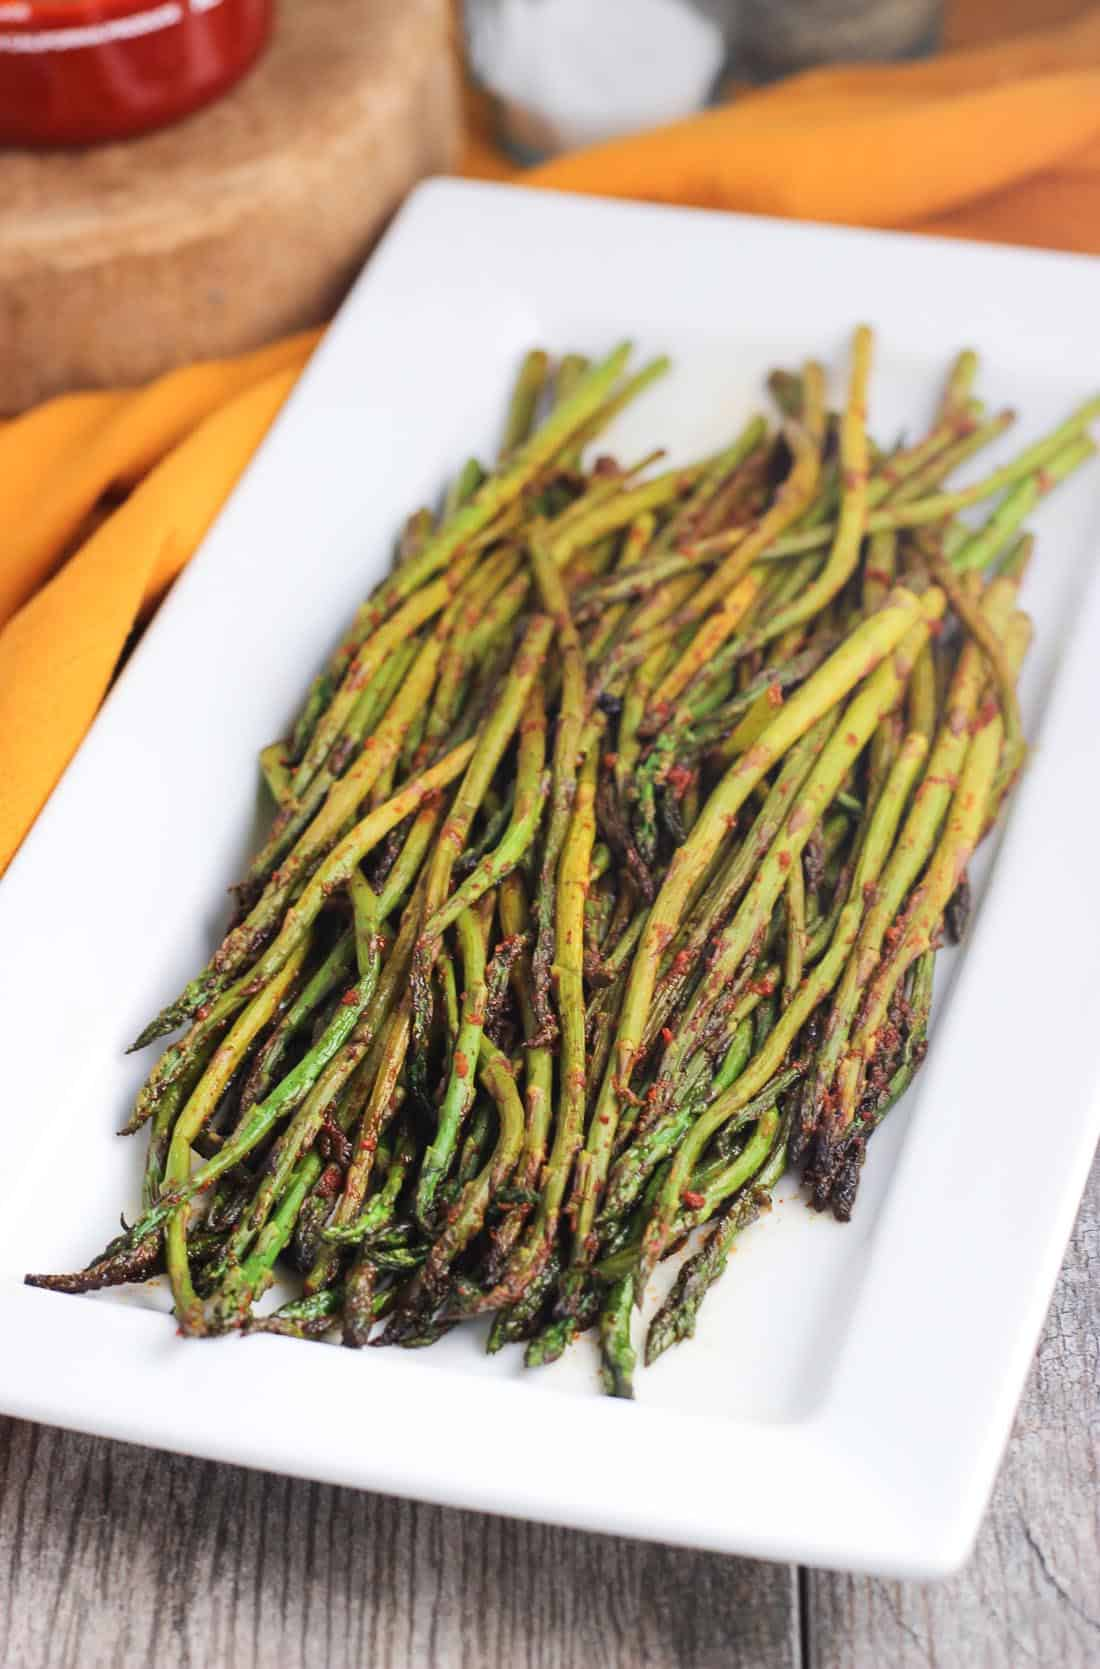 Spicy stovetop asparagus is an easy and flavorful side dish recipe!